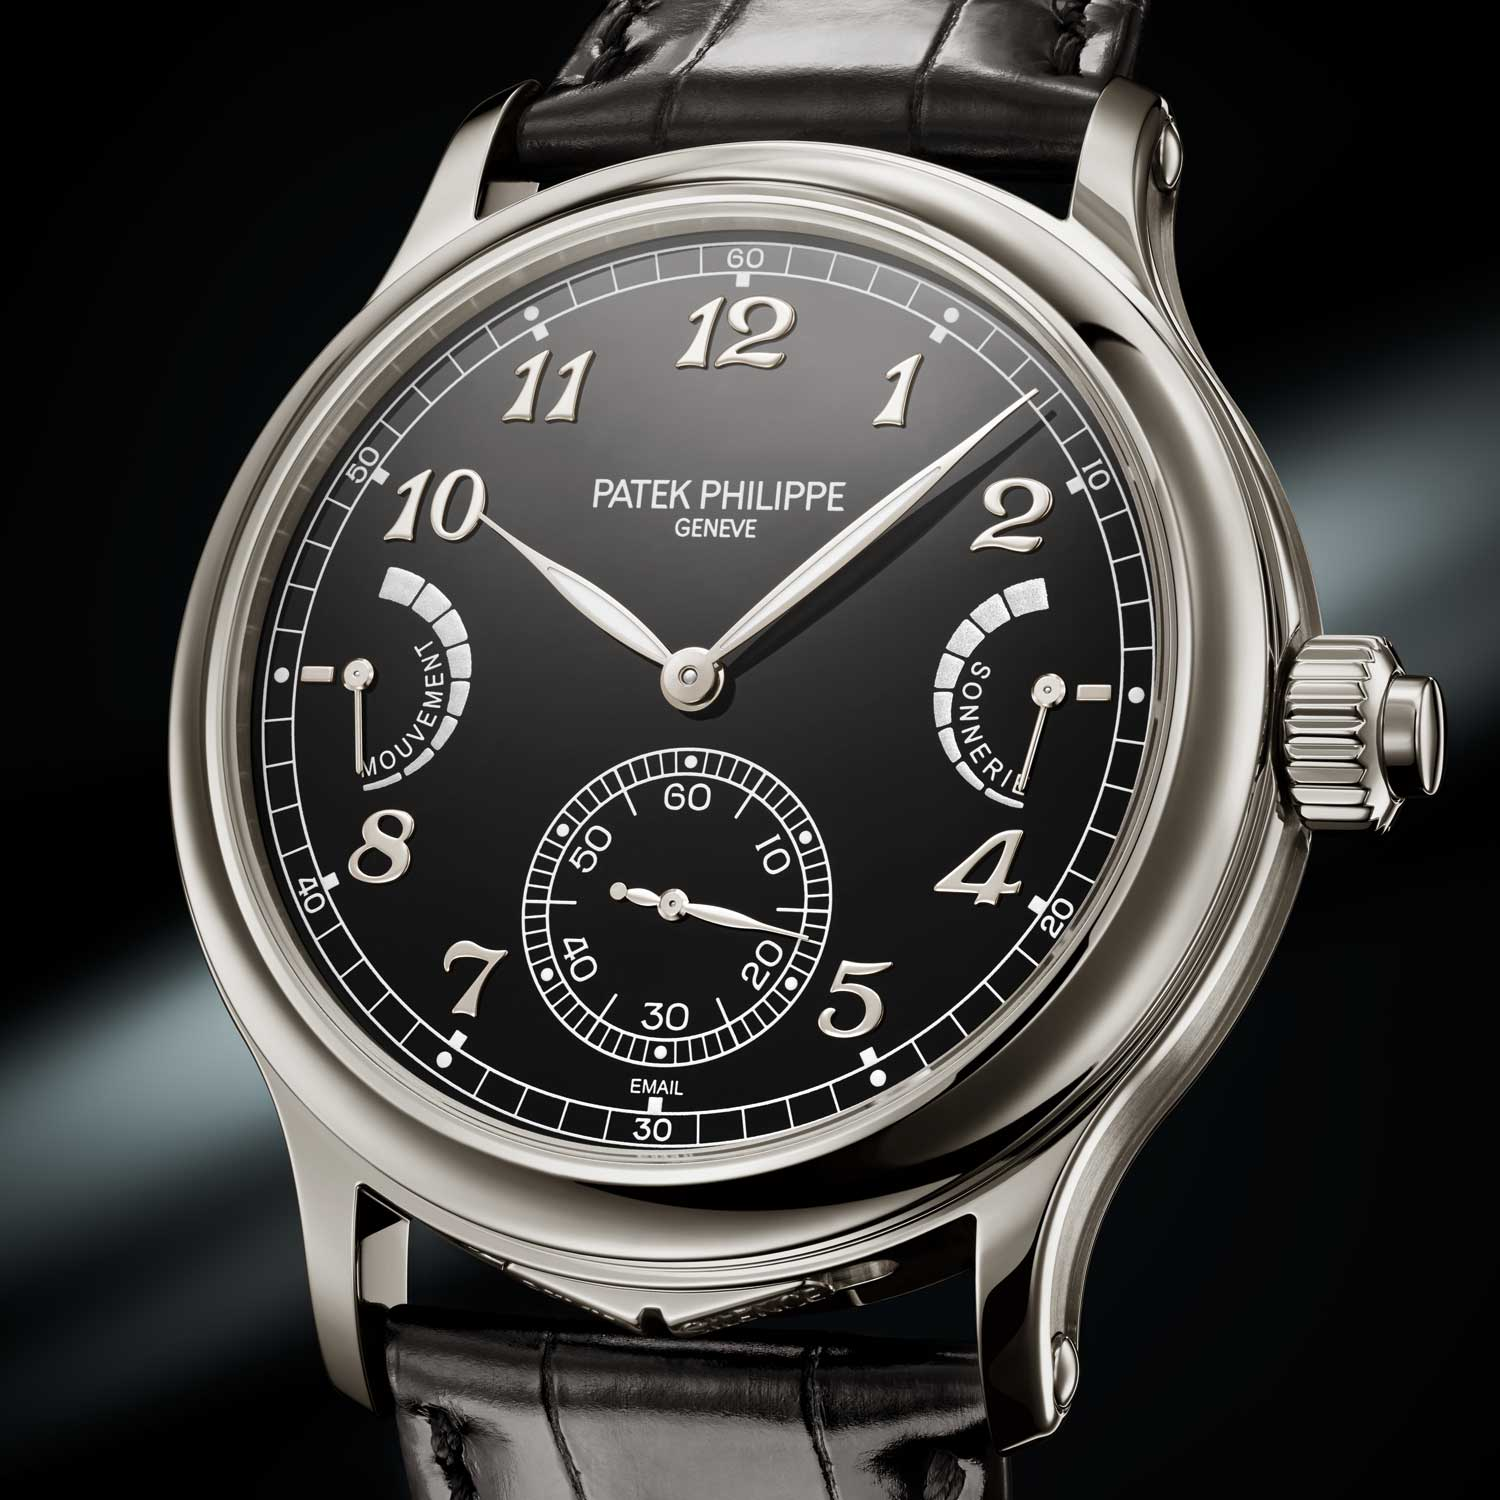 "The 44.8 mm platinum Patek Philippe Ref. 6301P Grande Sonnerie features an 18K gold, black grand feu enamel dial with ""glacé"" finish; applied Breguet numerals in 18K white gold; leaf-shaped hour and minute hands in 18K white gold with luminous coating; subsidiary seconds at 6 o'clock with ""dague"" type hand in white gold, printed railway track seconds scale with luminous 10-second markers; printed railway track minute scale with luminous 5-minute markers ""Cheveu"" type hands in white gold for the power-reserve indicators for the movement and the strikework"